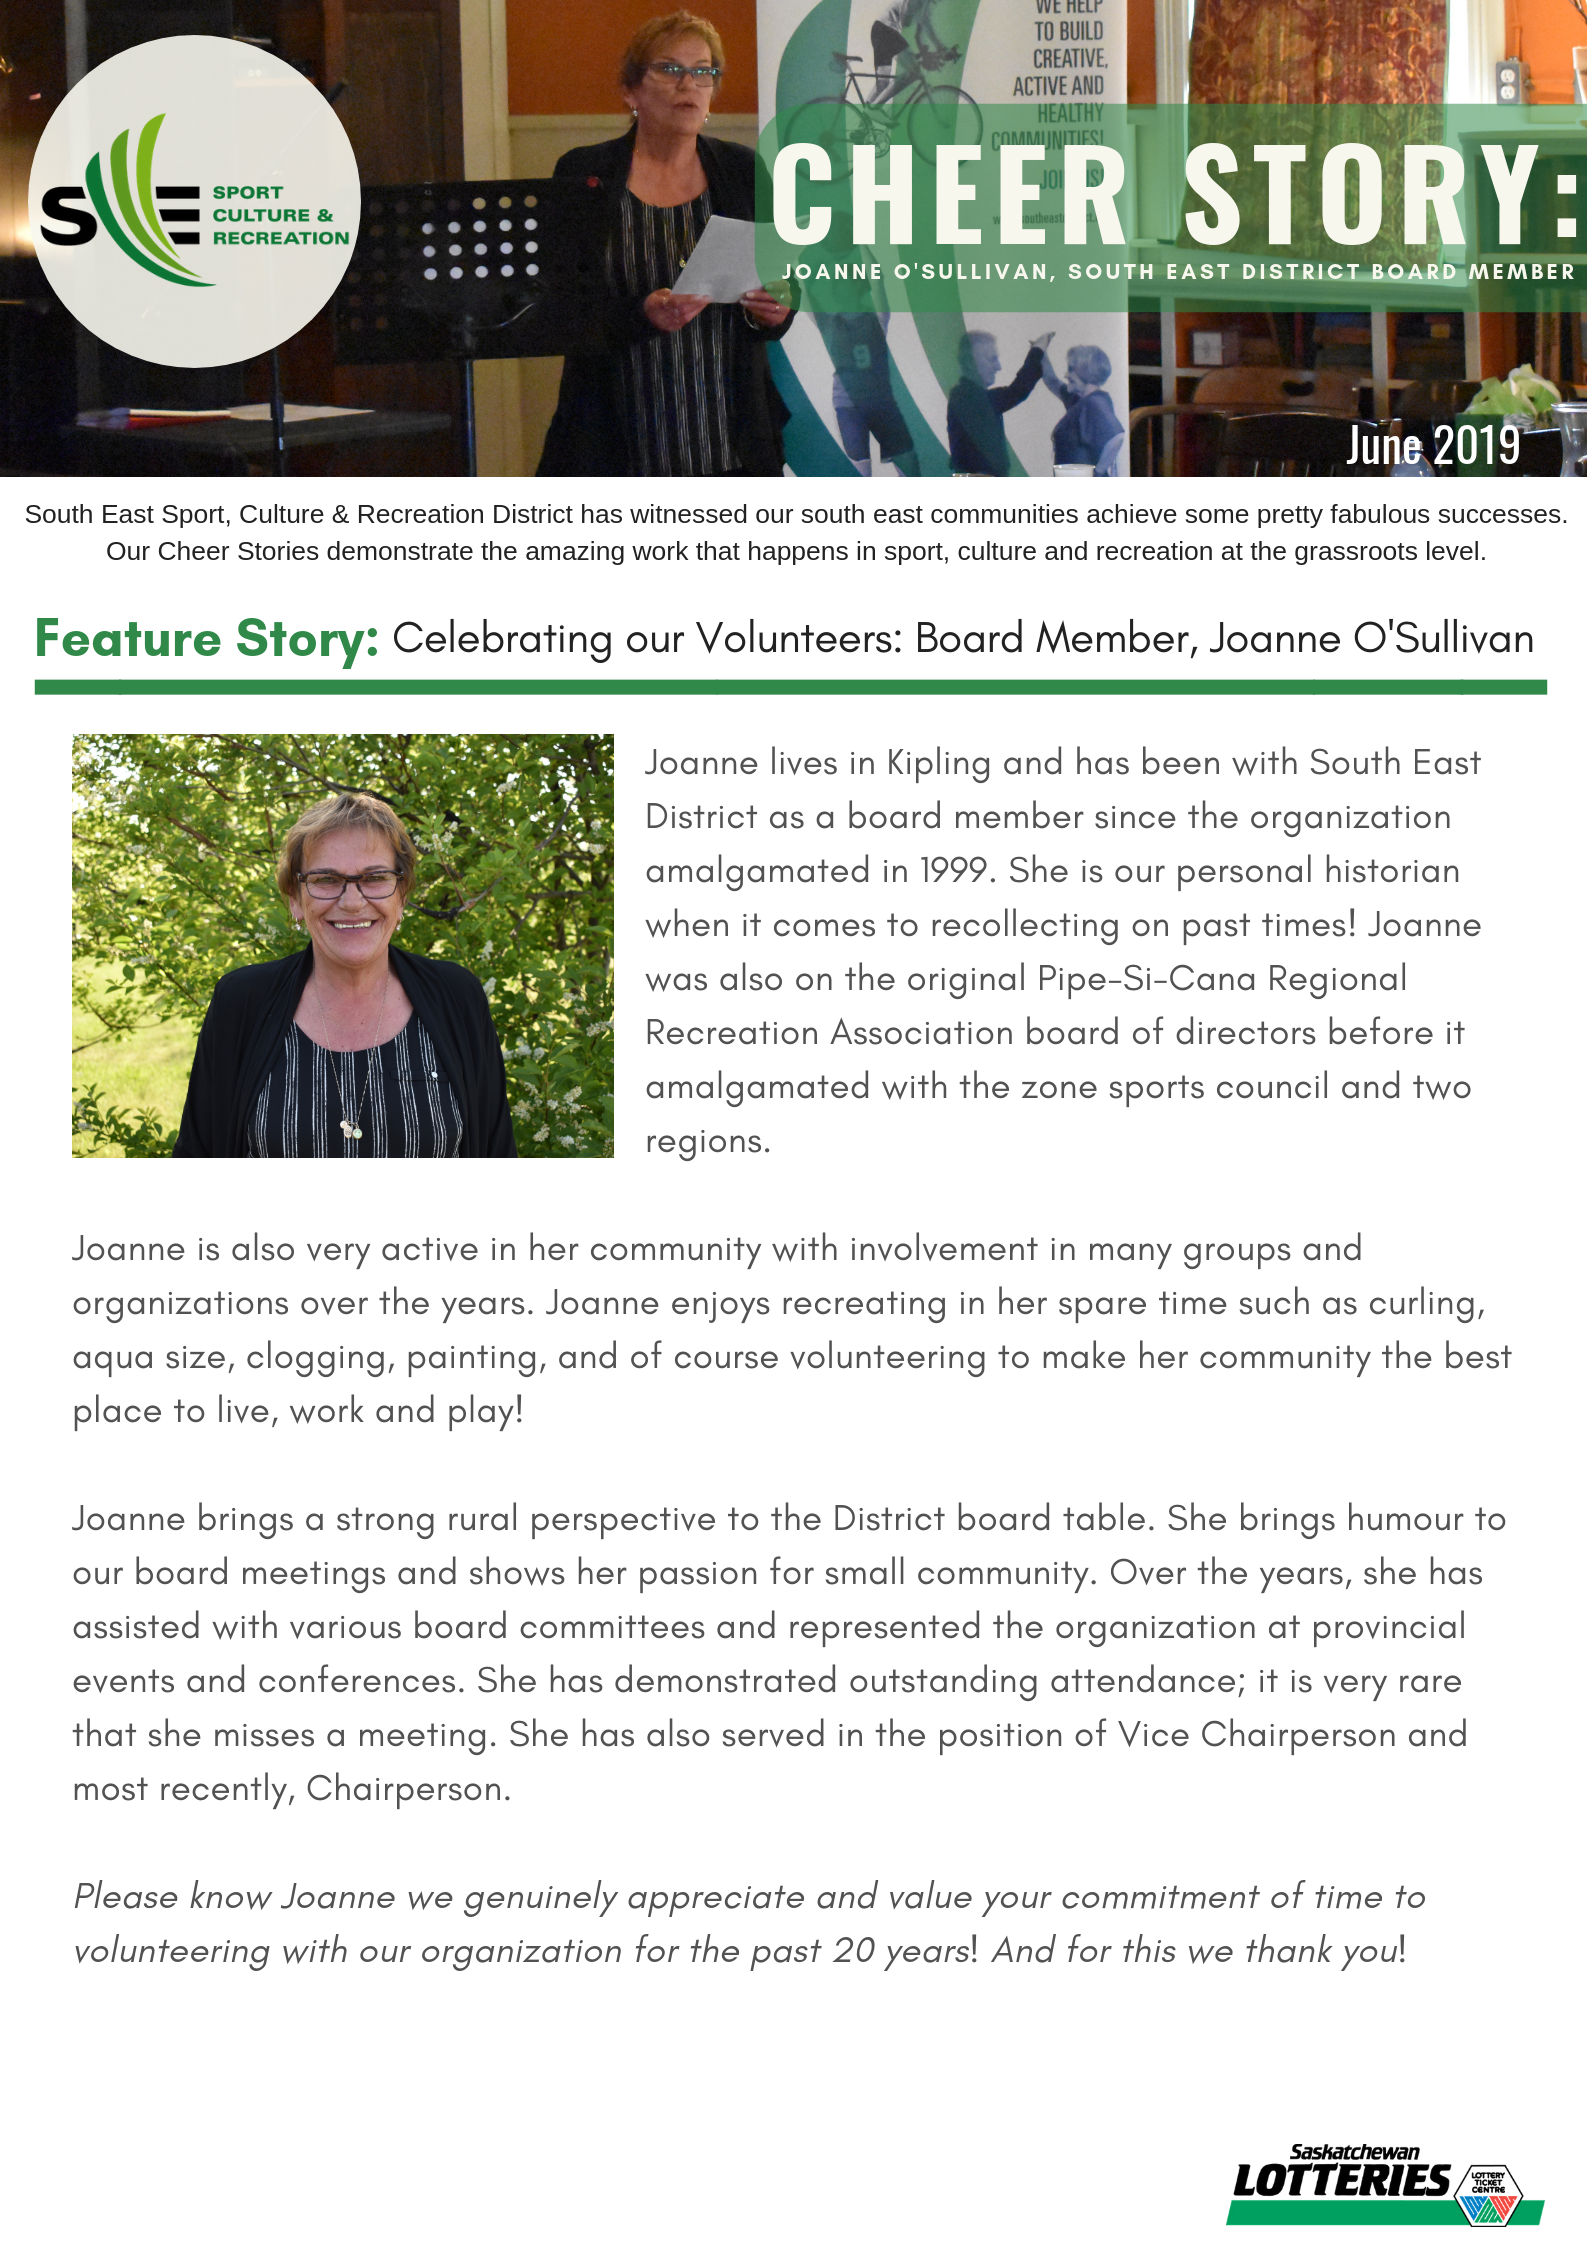 Cheer Story: Celebrating our Volunteers, Joanne O'Sullivan - Image 1